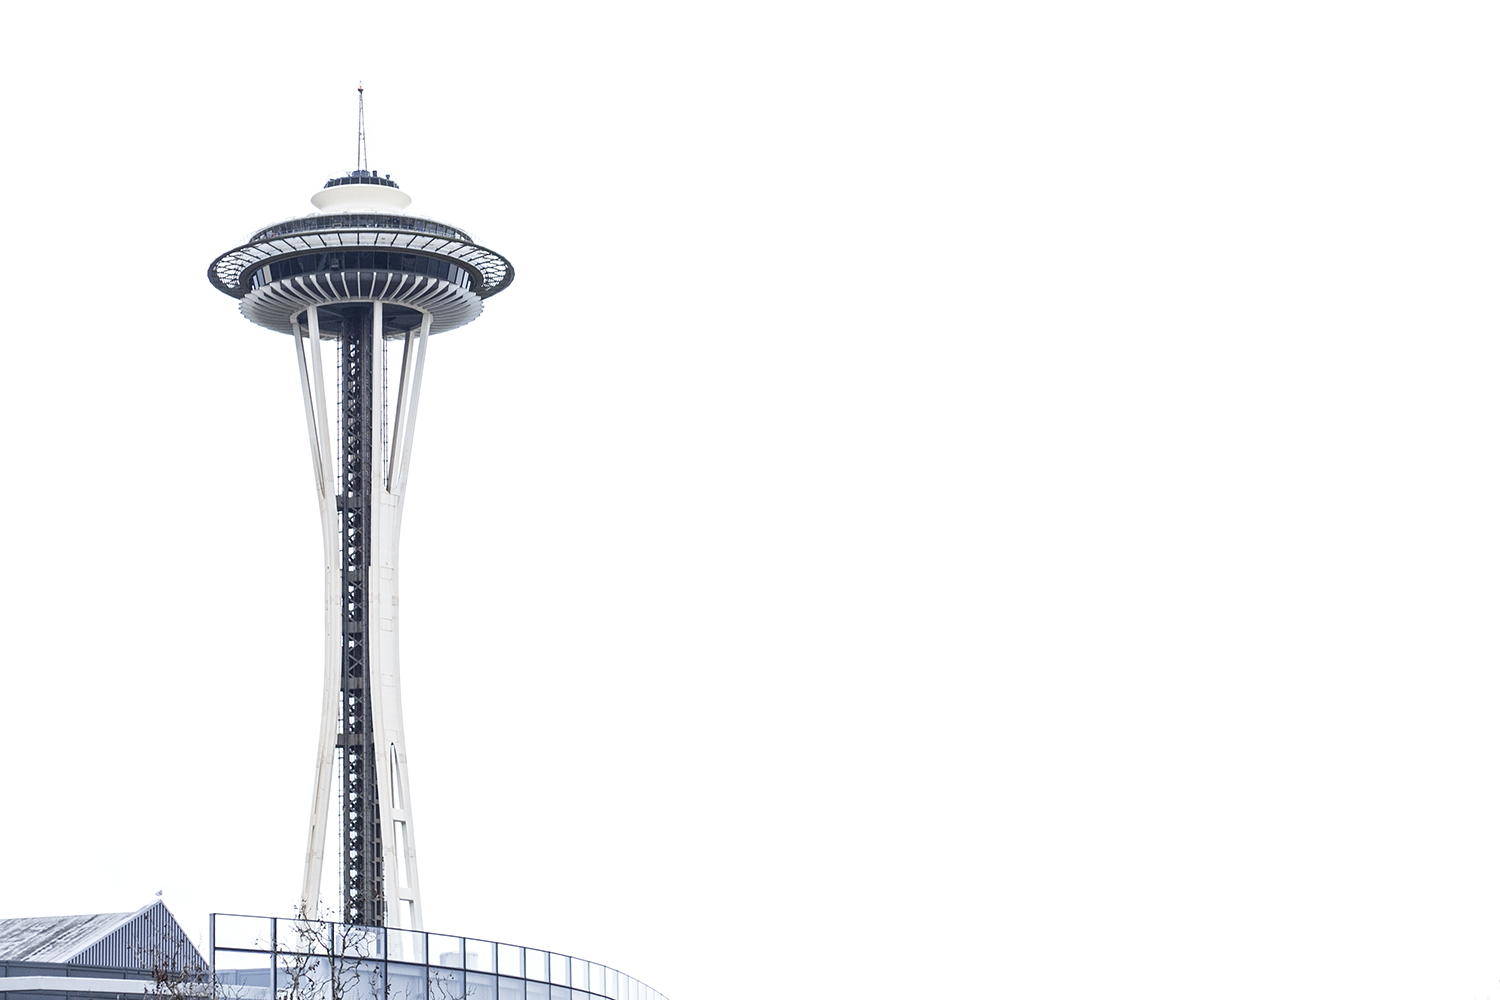 02seattle-spaceneedle-travel